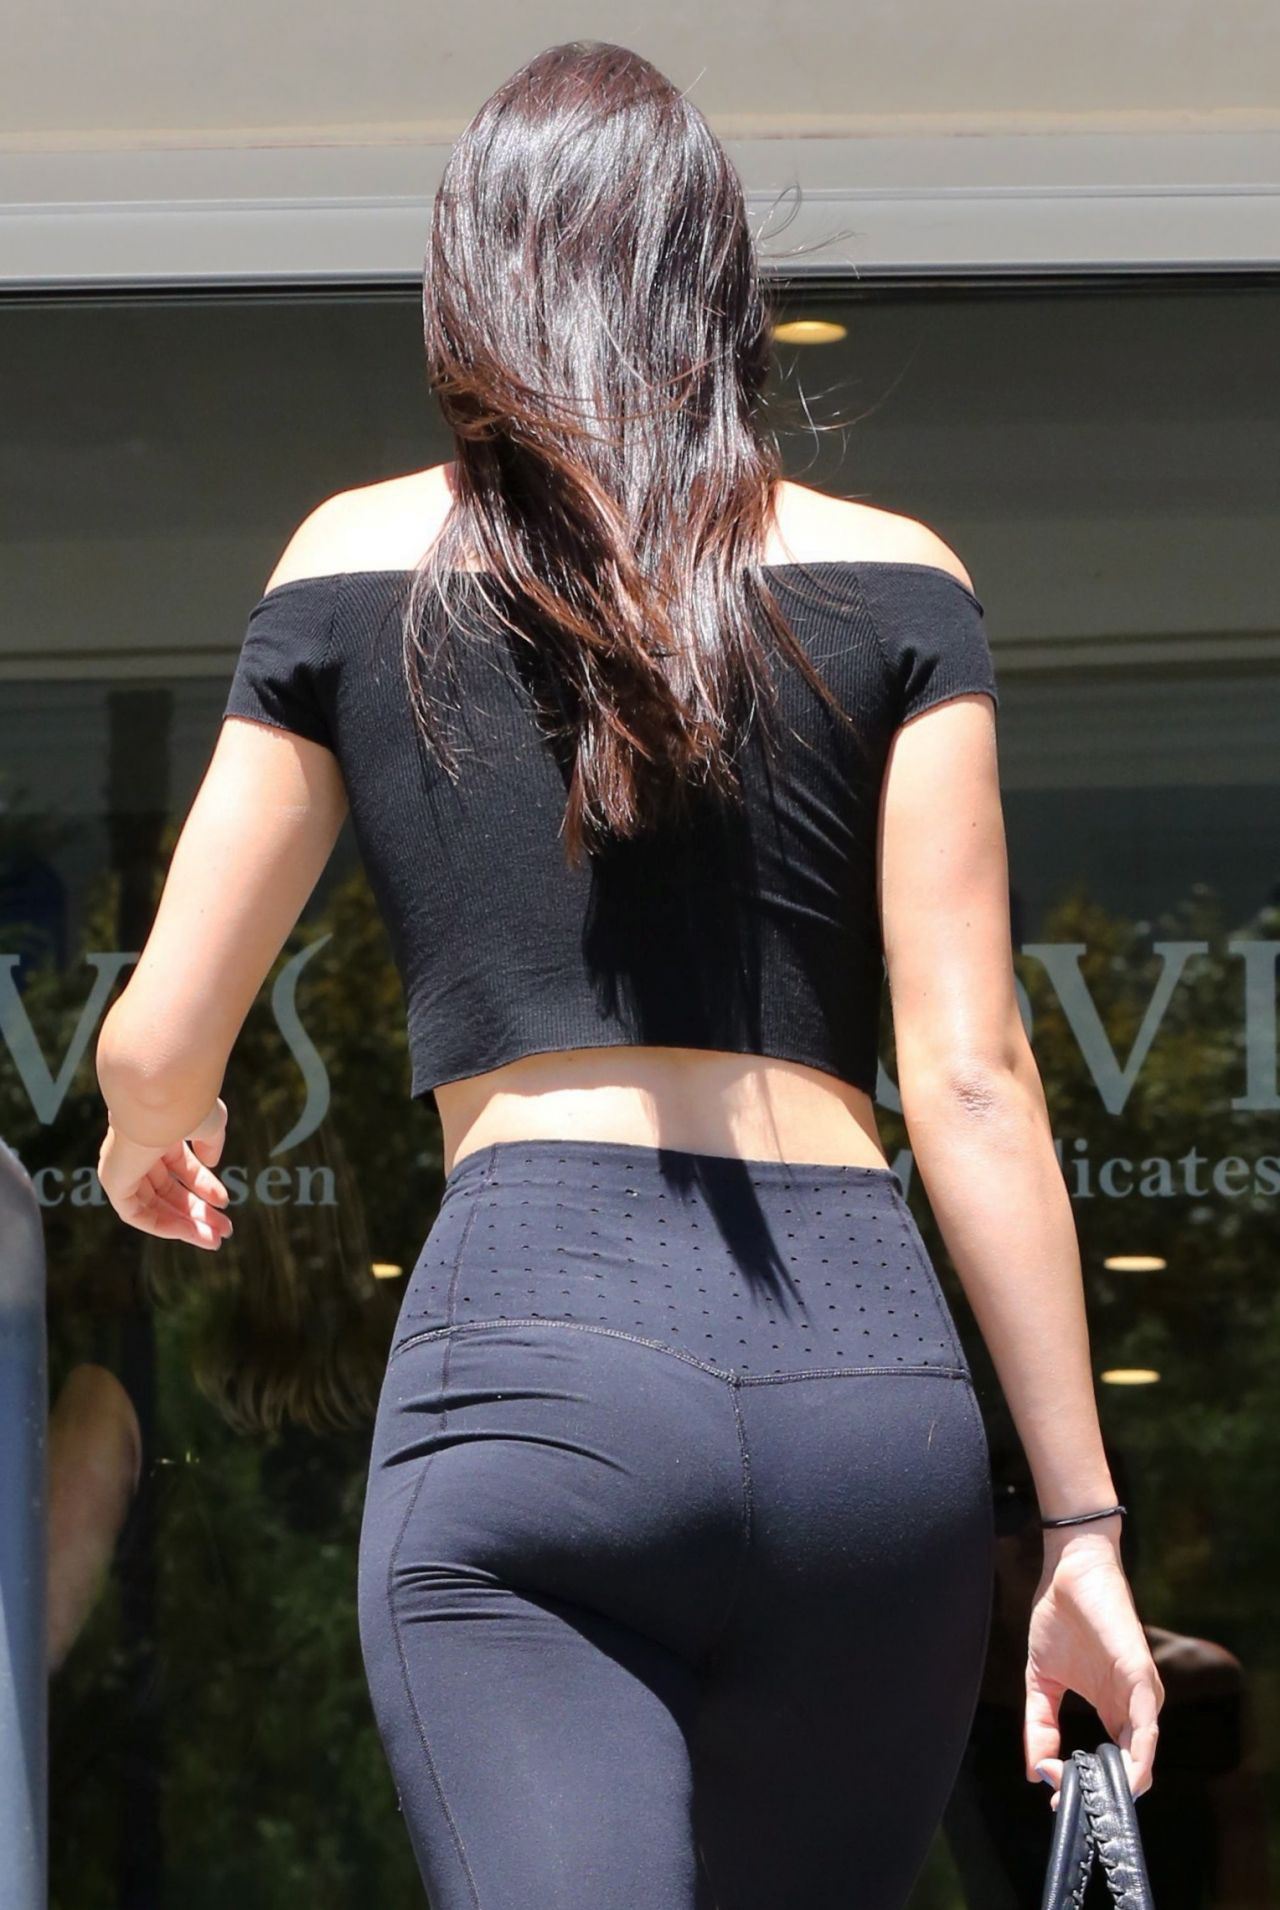 Kendall Jenner Booty in Spandex Out in Calabasas, August 2015